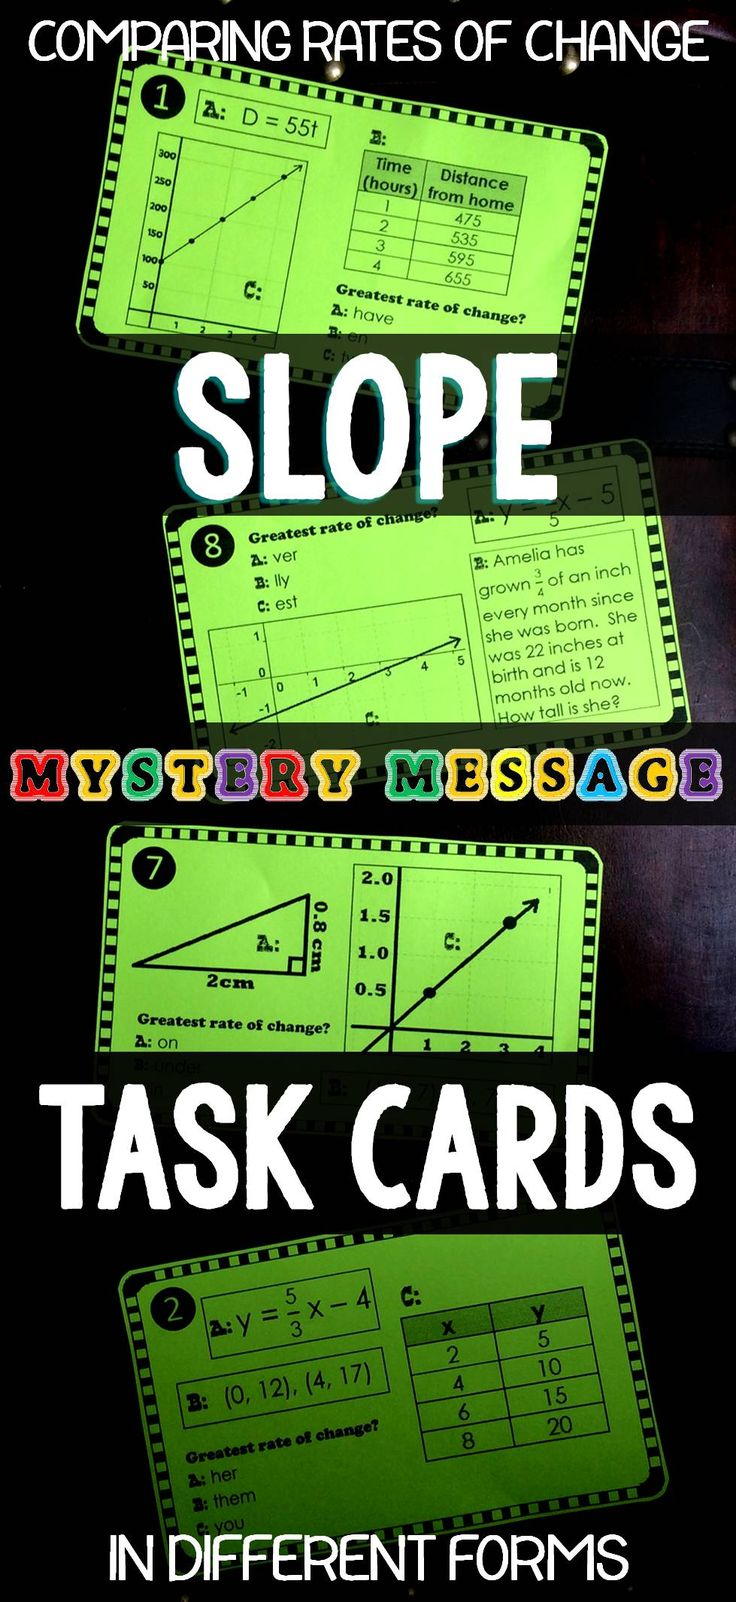 slope task cards mystery message first day of school activities and equation. Black Bedroom Furniture Sets. Home Design Ideas